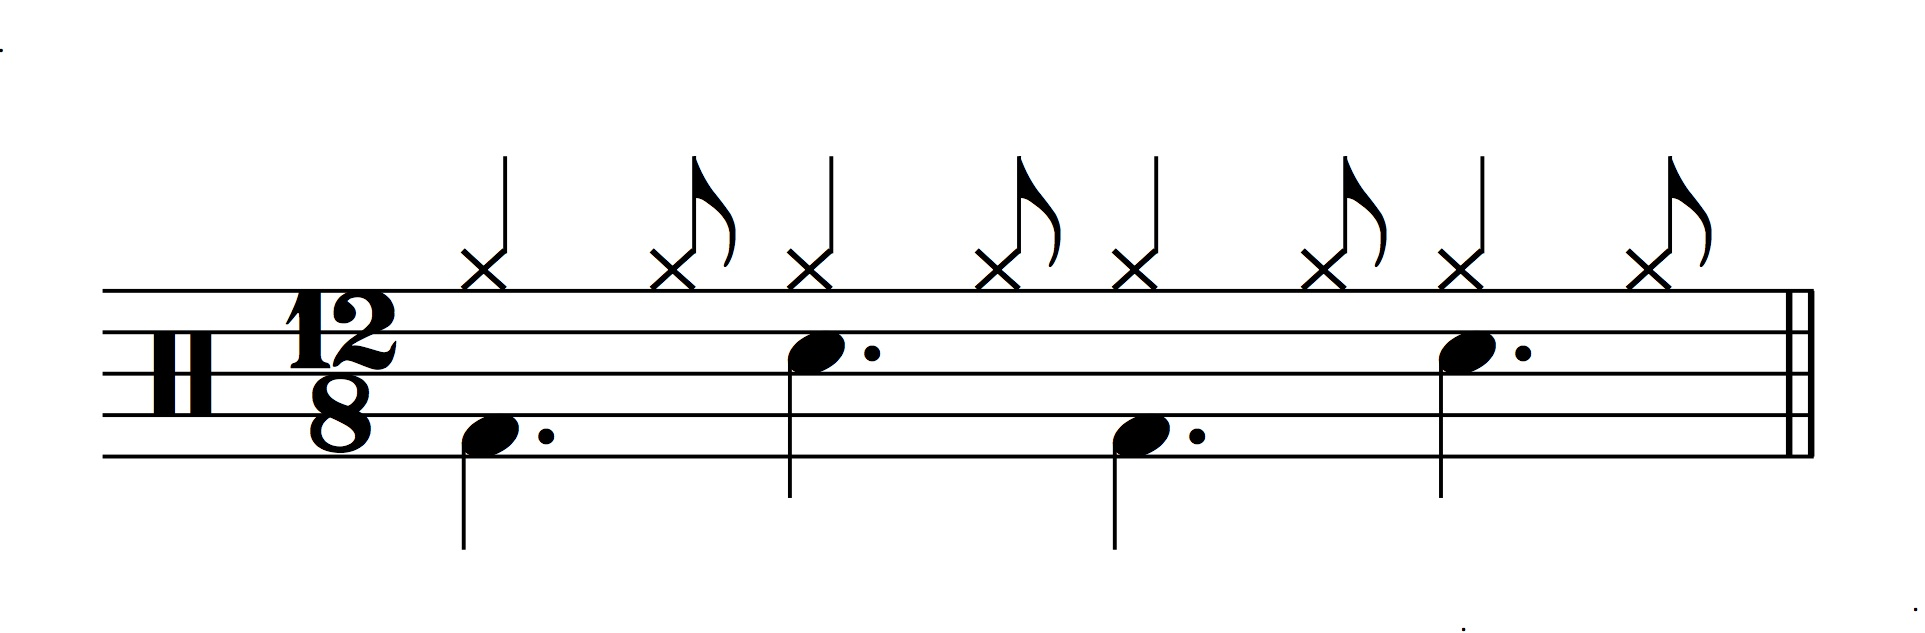 Figure 7.: Shuffle drum pattern renotated in 12/8.